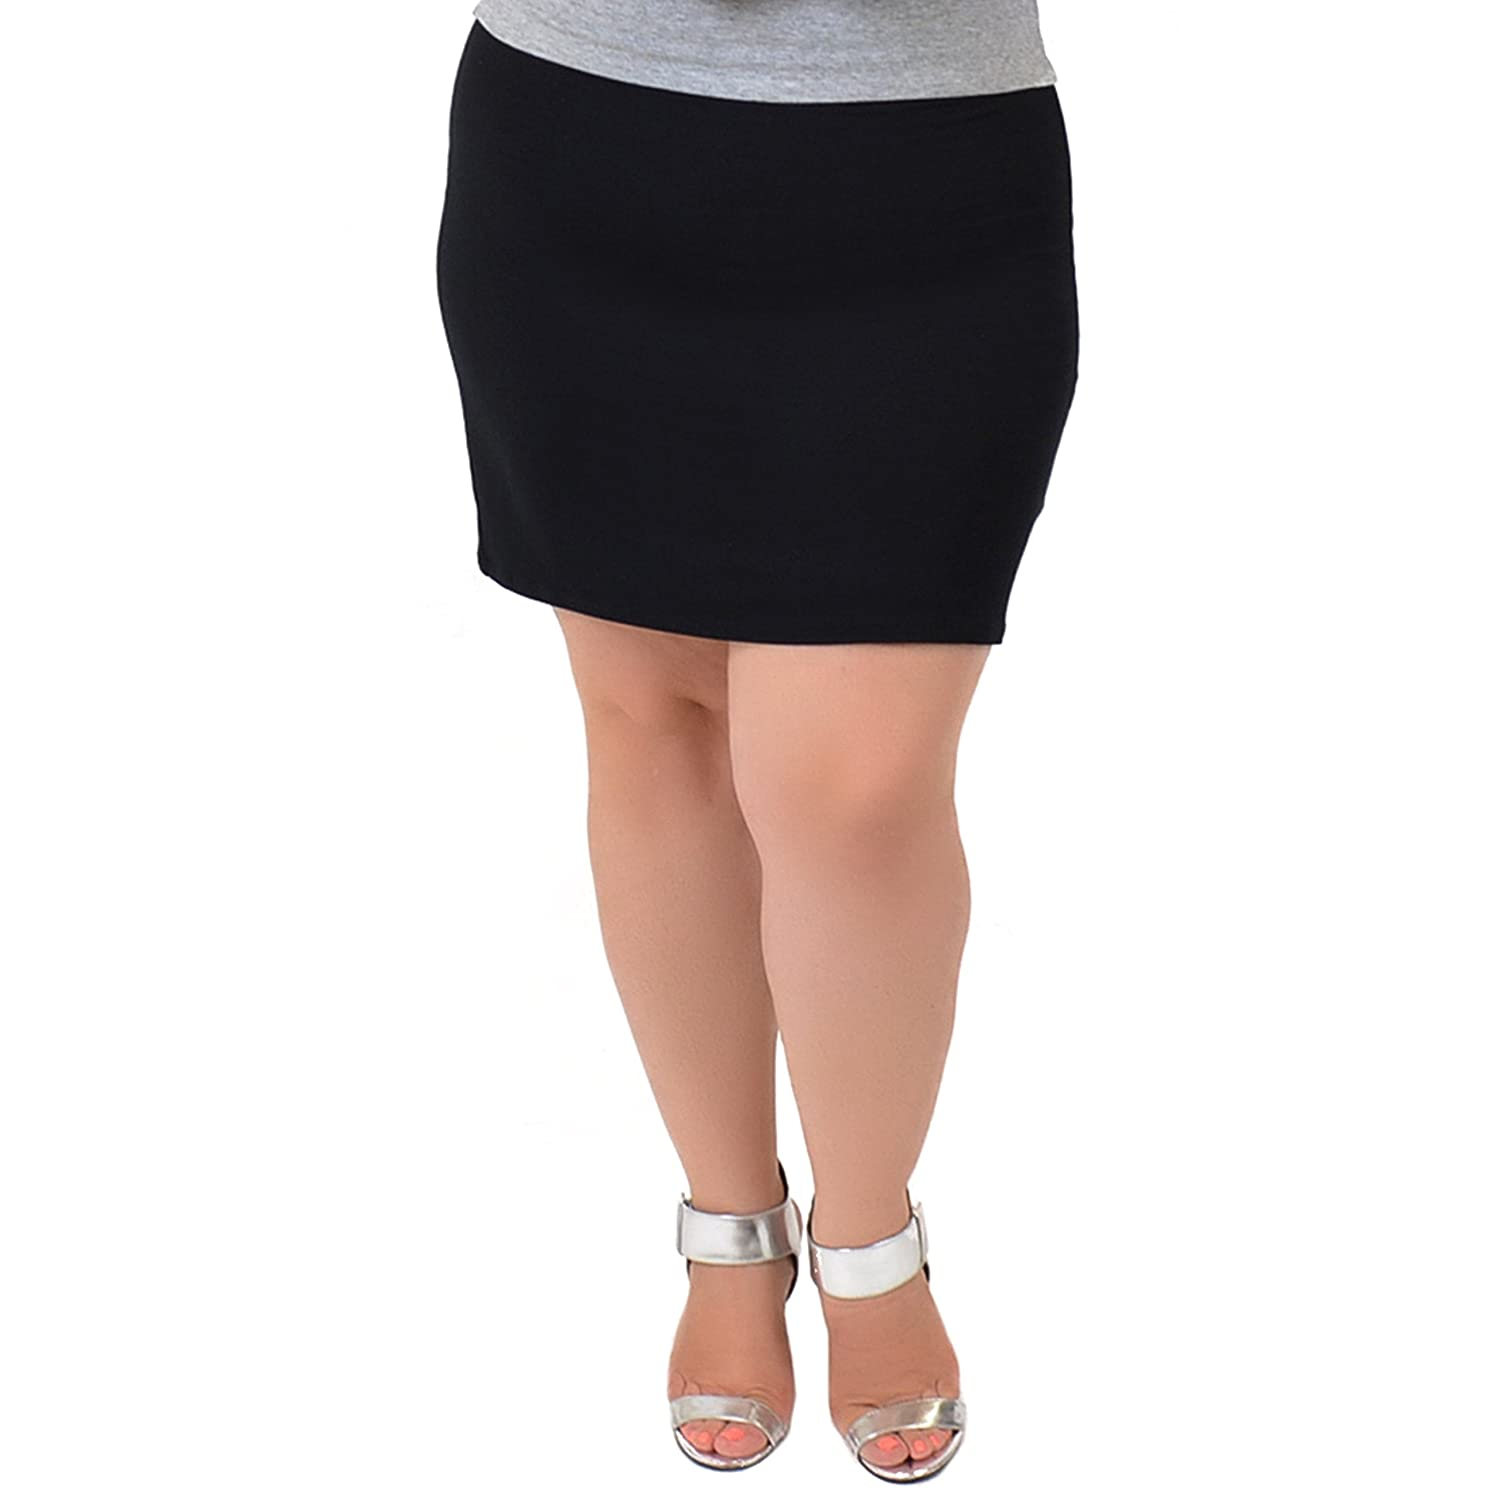 63a725420cc48 Stretch is Comfort Women s Plus Size Soft Stretch Fabric Basic Mini Skirt  at Amazon Women s Clothing store